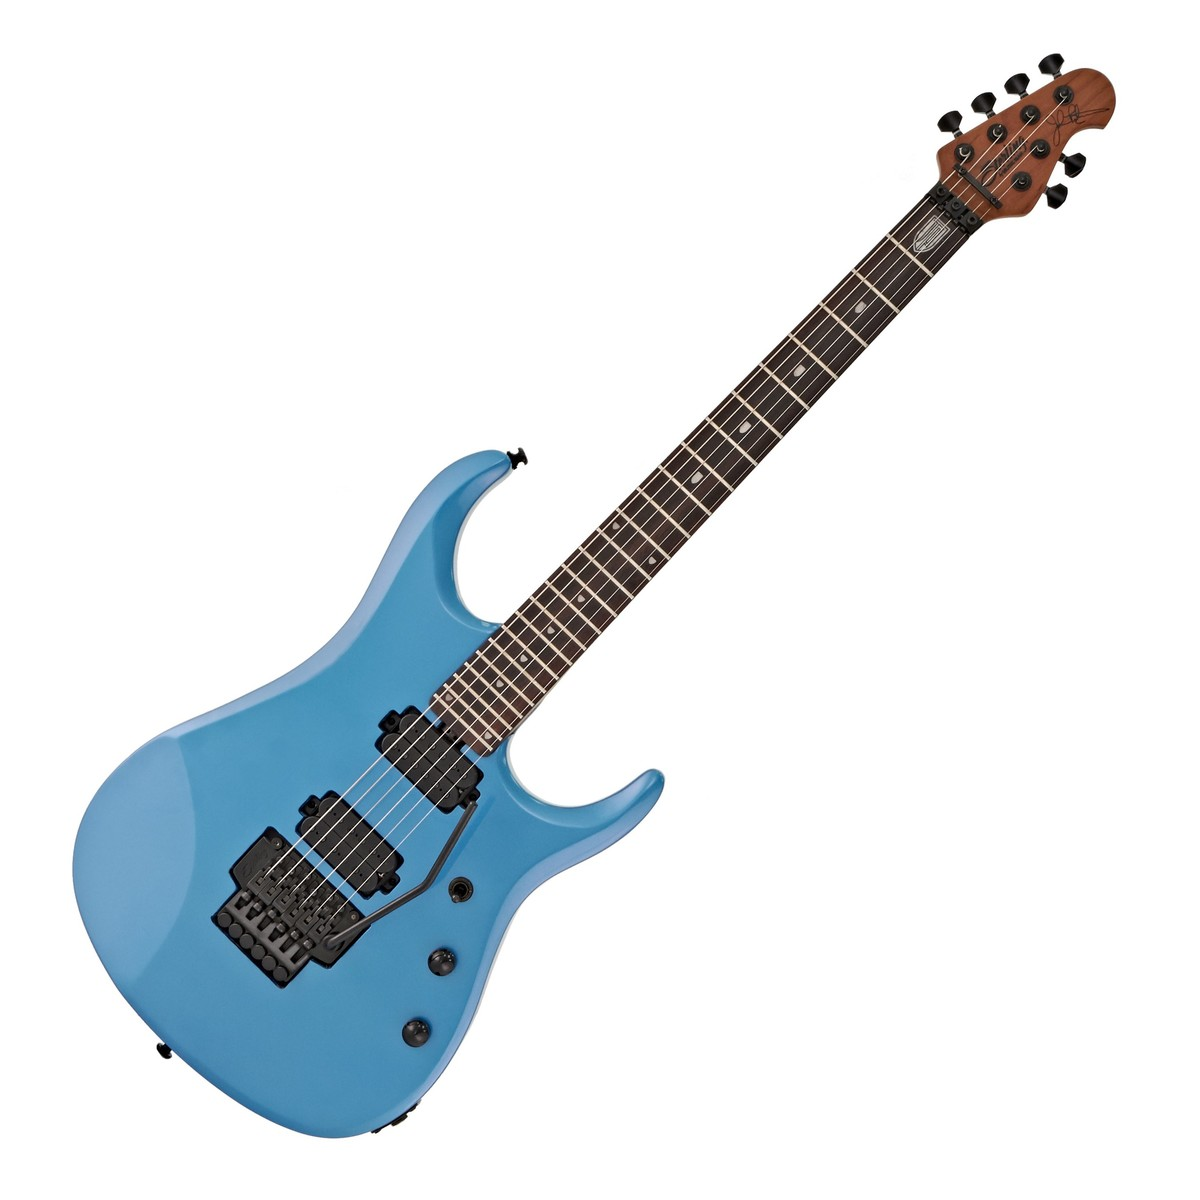 sterling by music man john petrucci jp160 toluca lake blue at gear4music. Black Bedroom Furniture Sets. Home Design Ideas